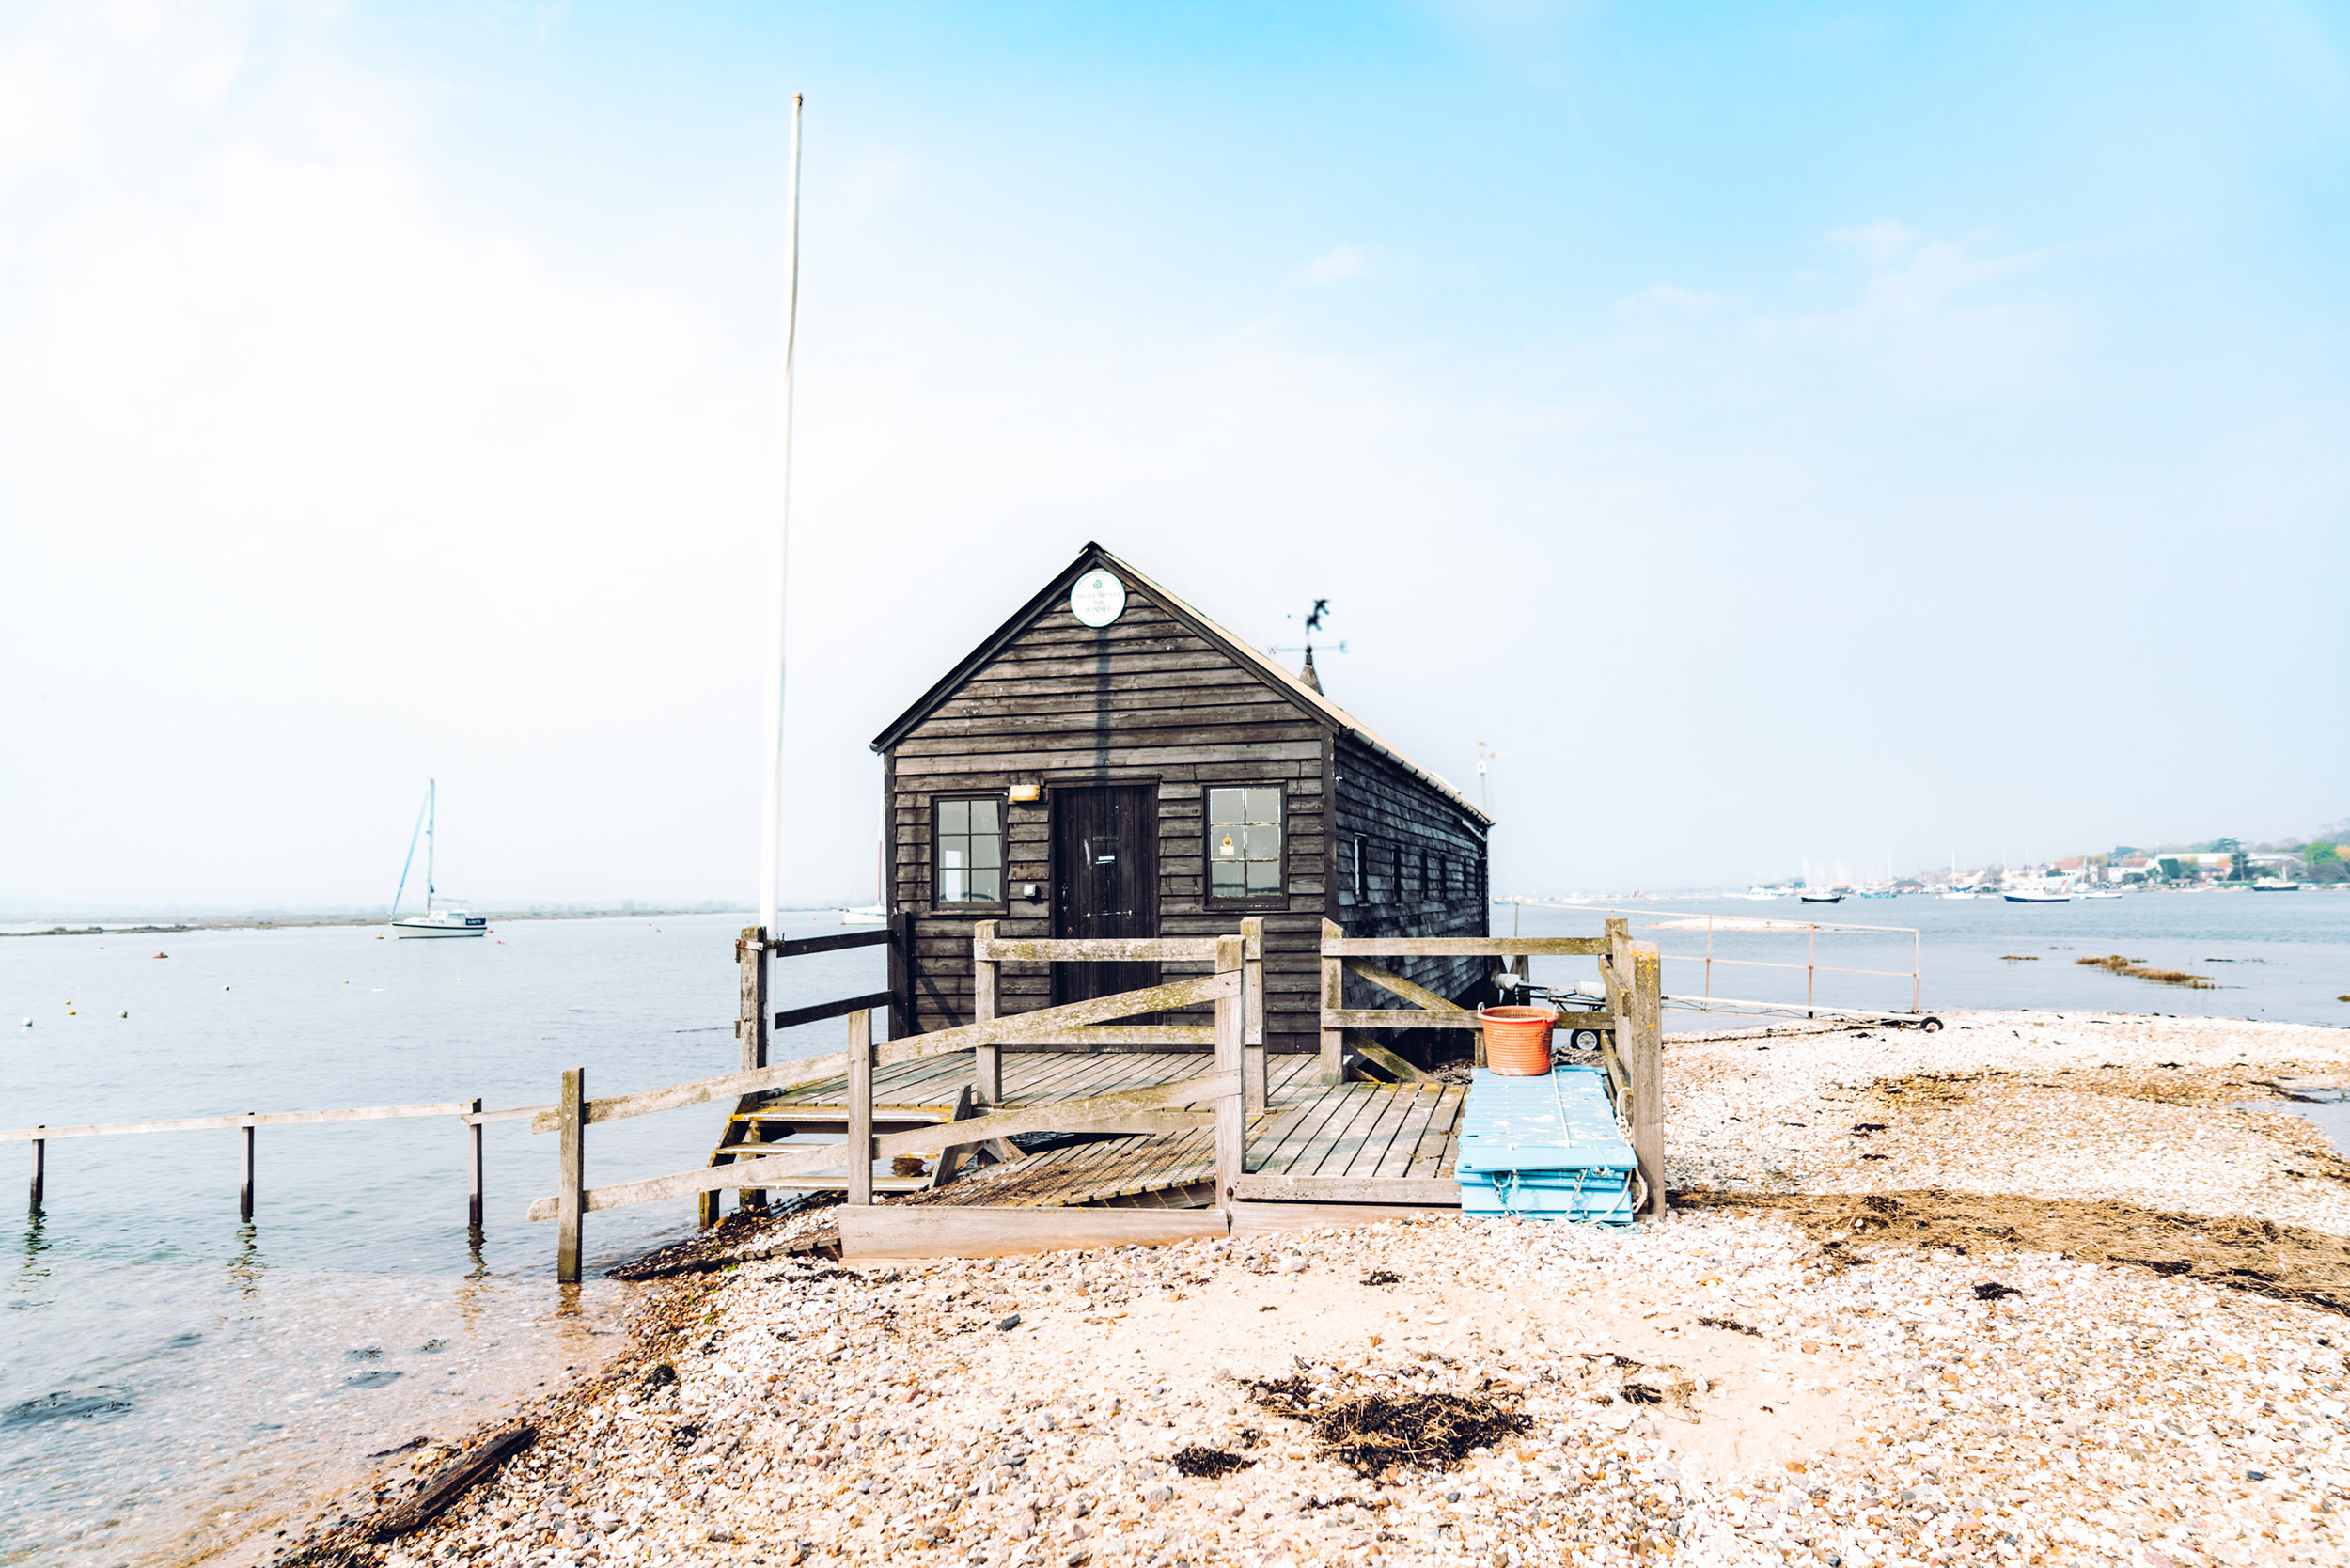 The Packing Shed | Mersea